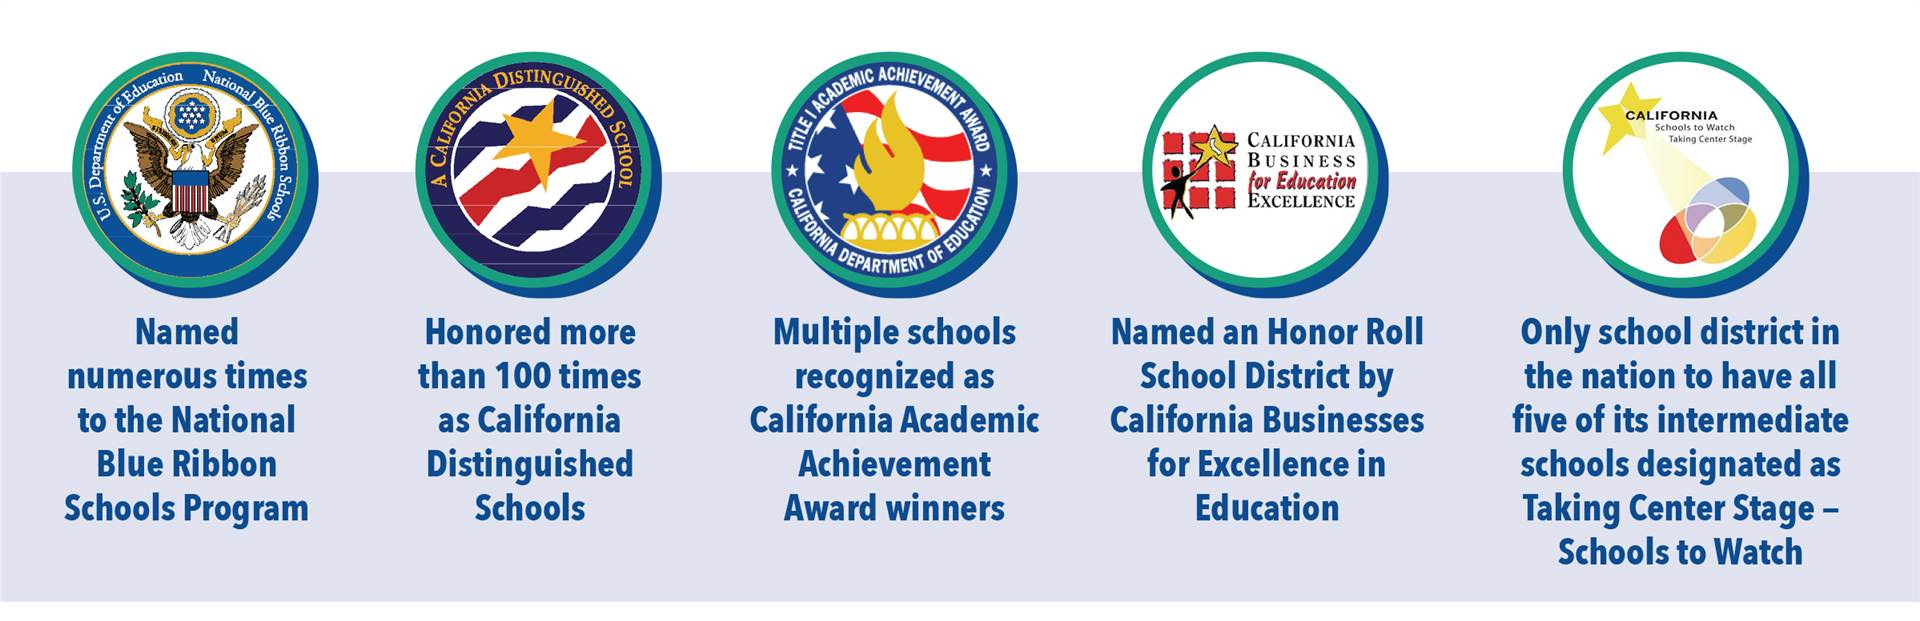 Named numerous times to the National Blue Ribbon Schools Program; Honored more than 100 times as California Distinguished Schools; Multiple schools recognized as California Academic Achievement Award